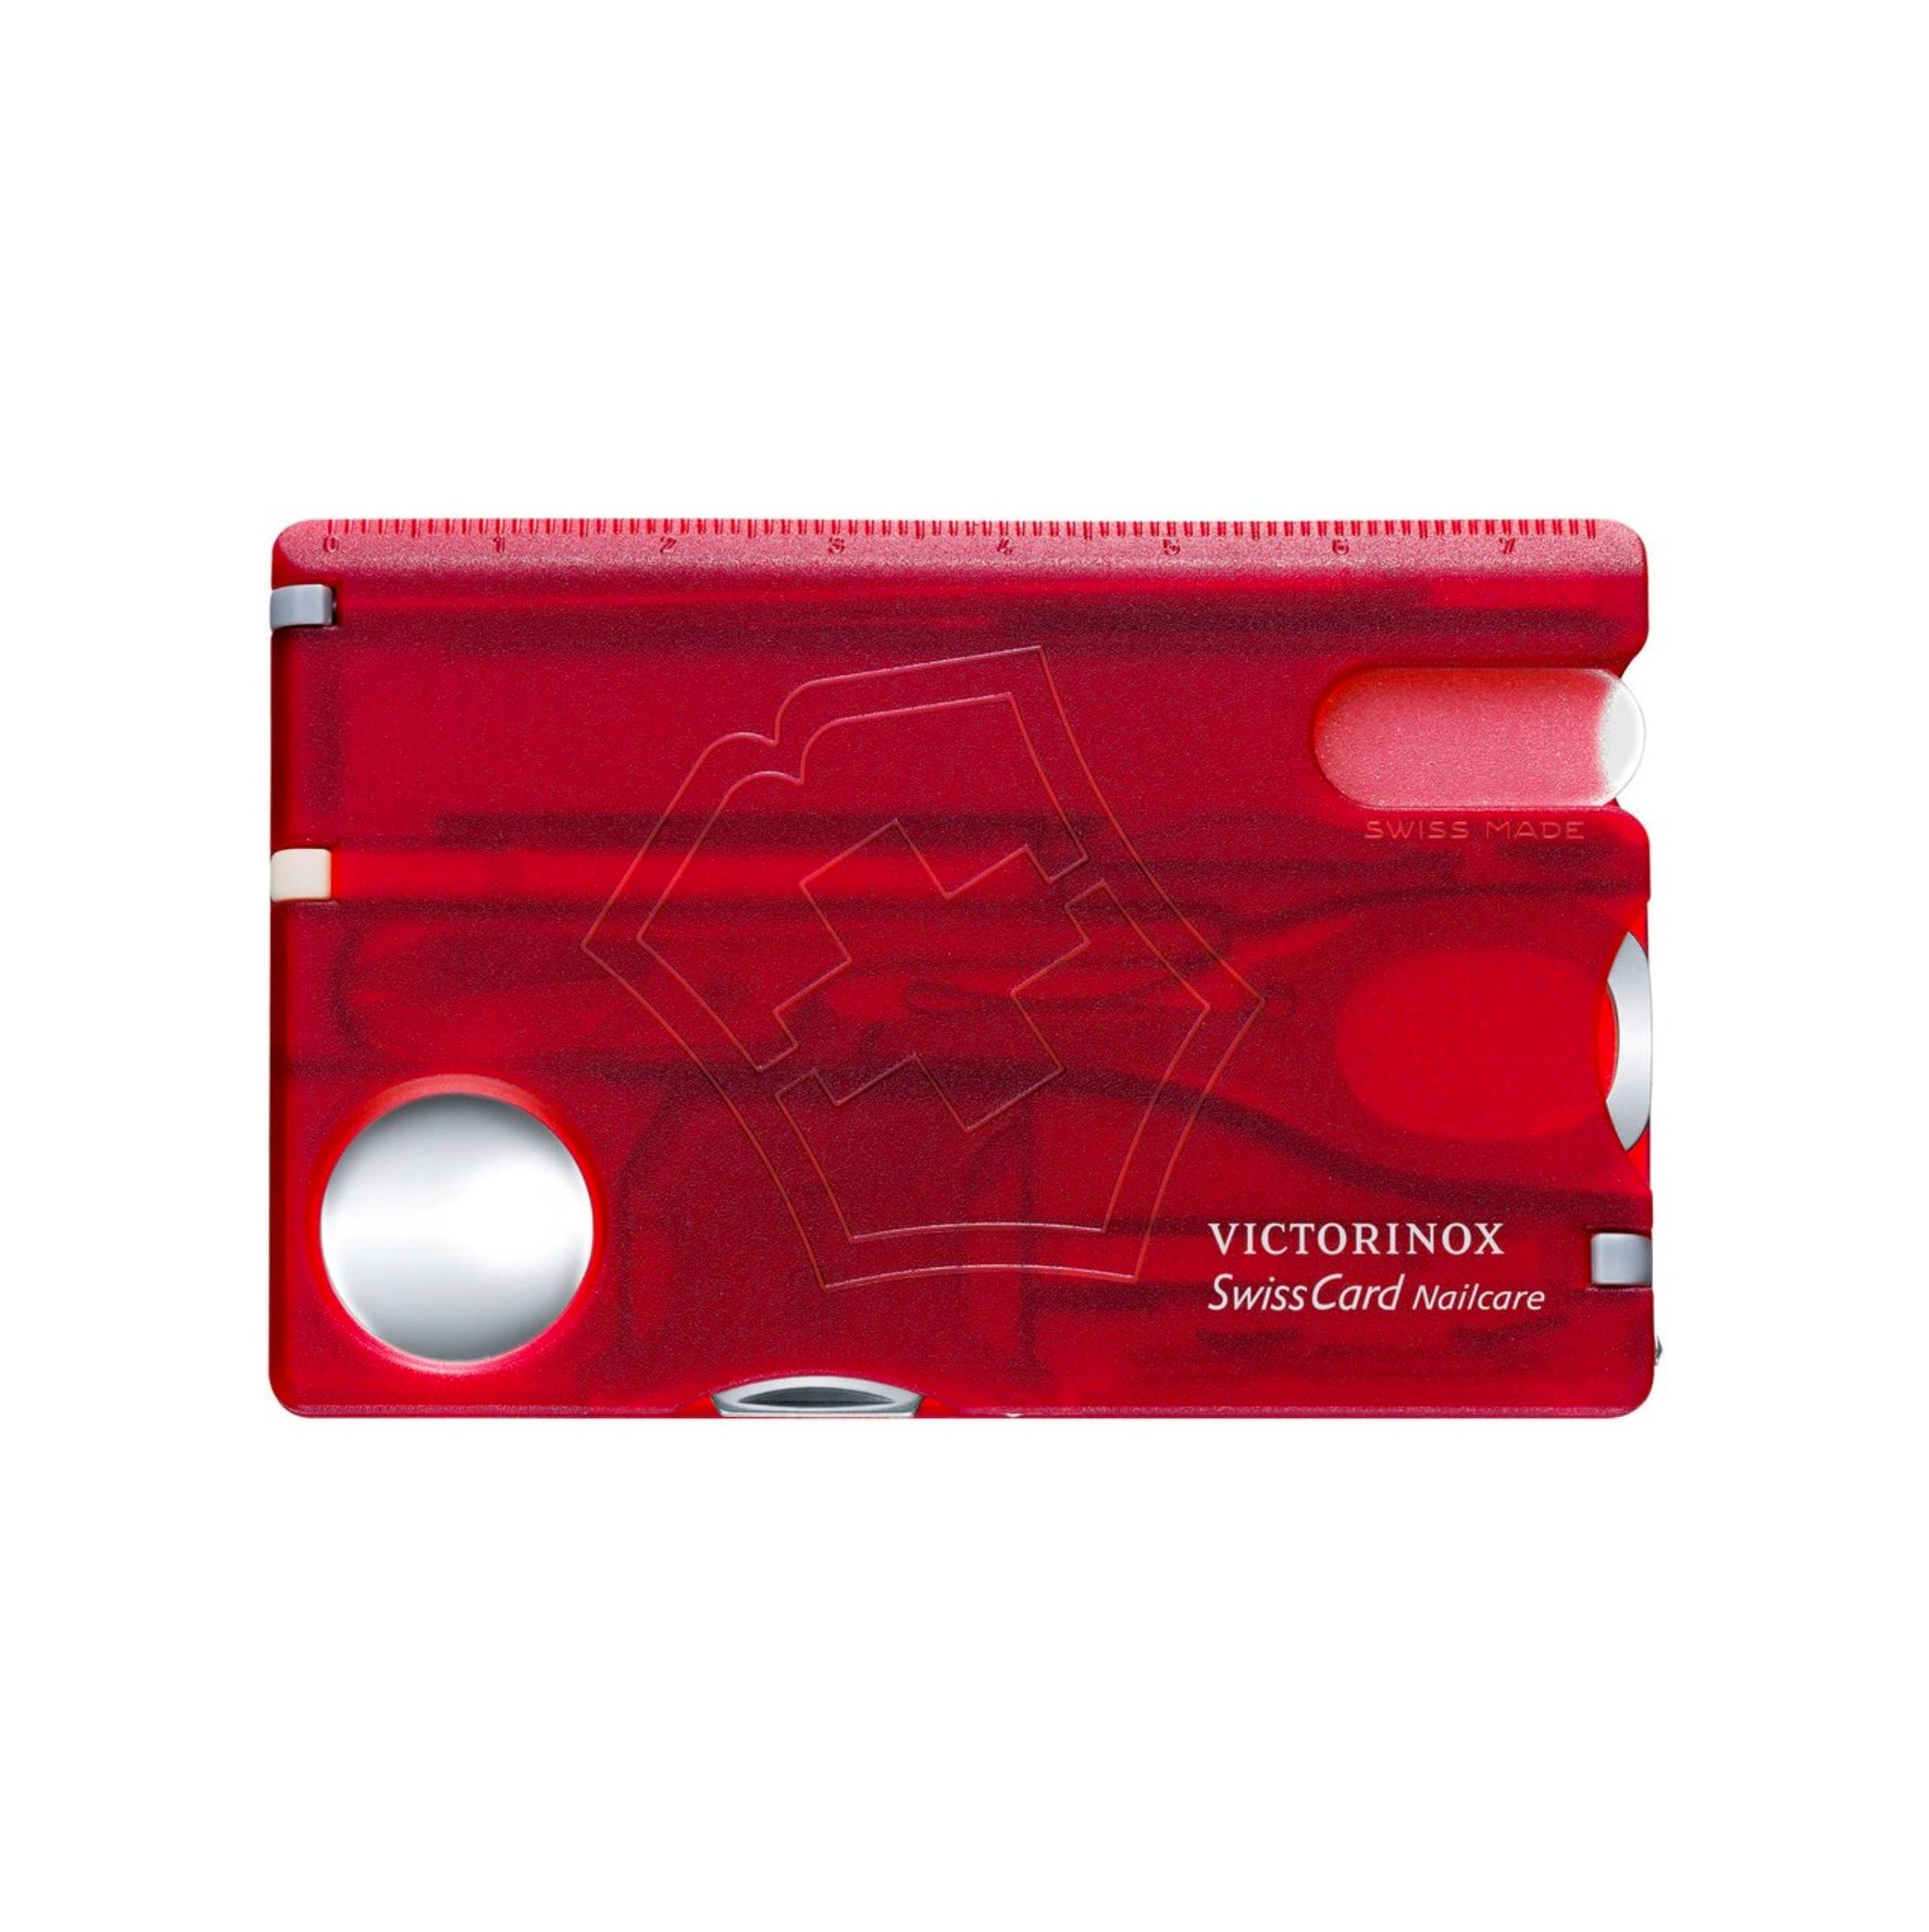 Victorinox Swisscard Nailcare - Red SP-Accessories Victorinox